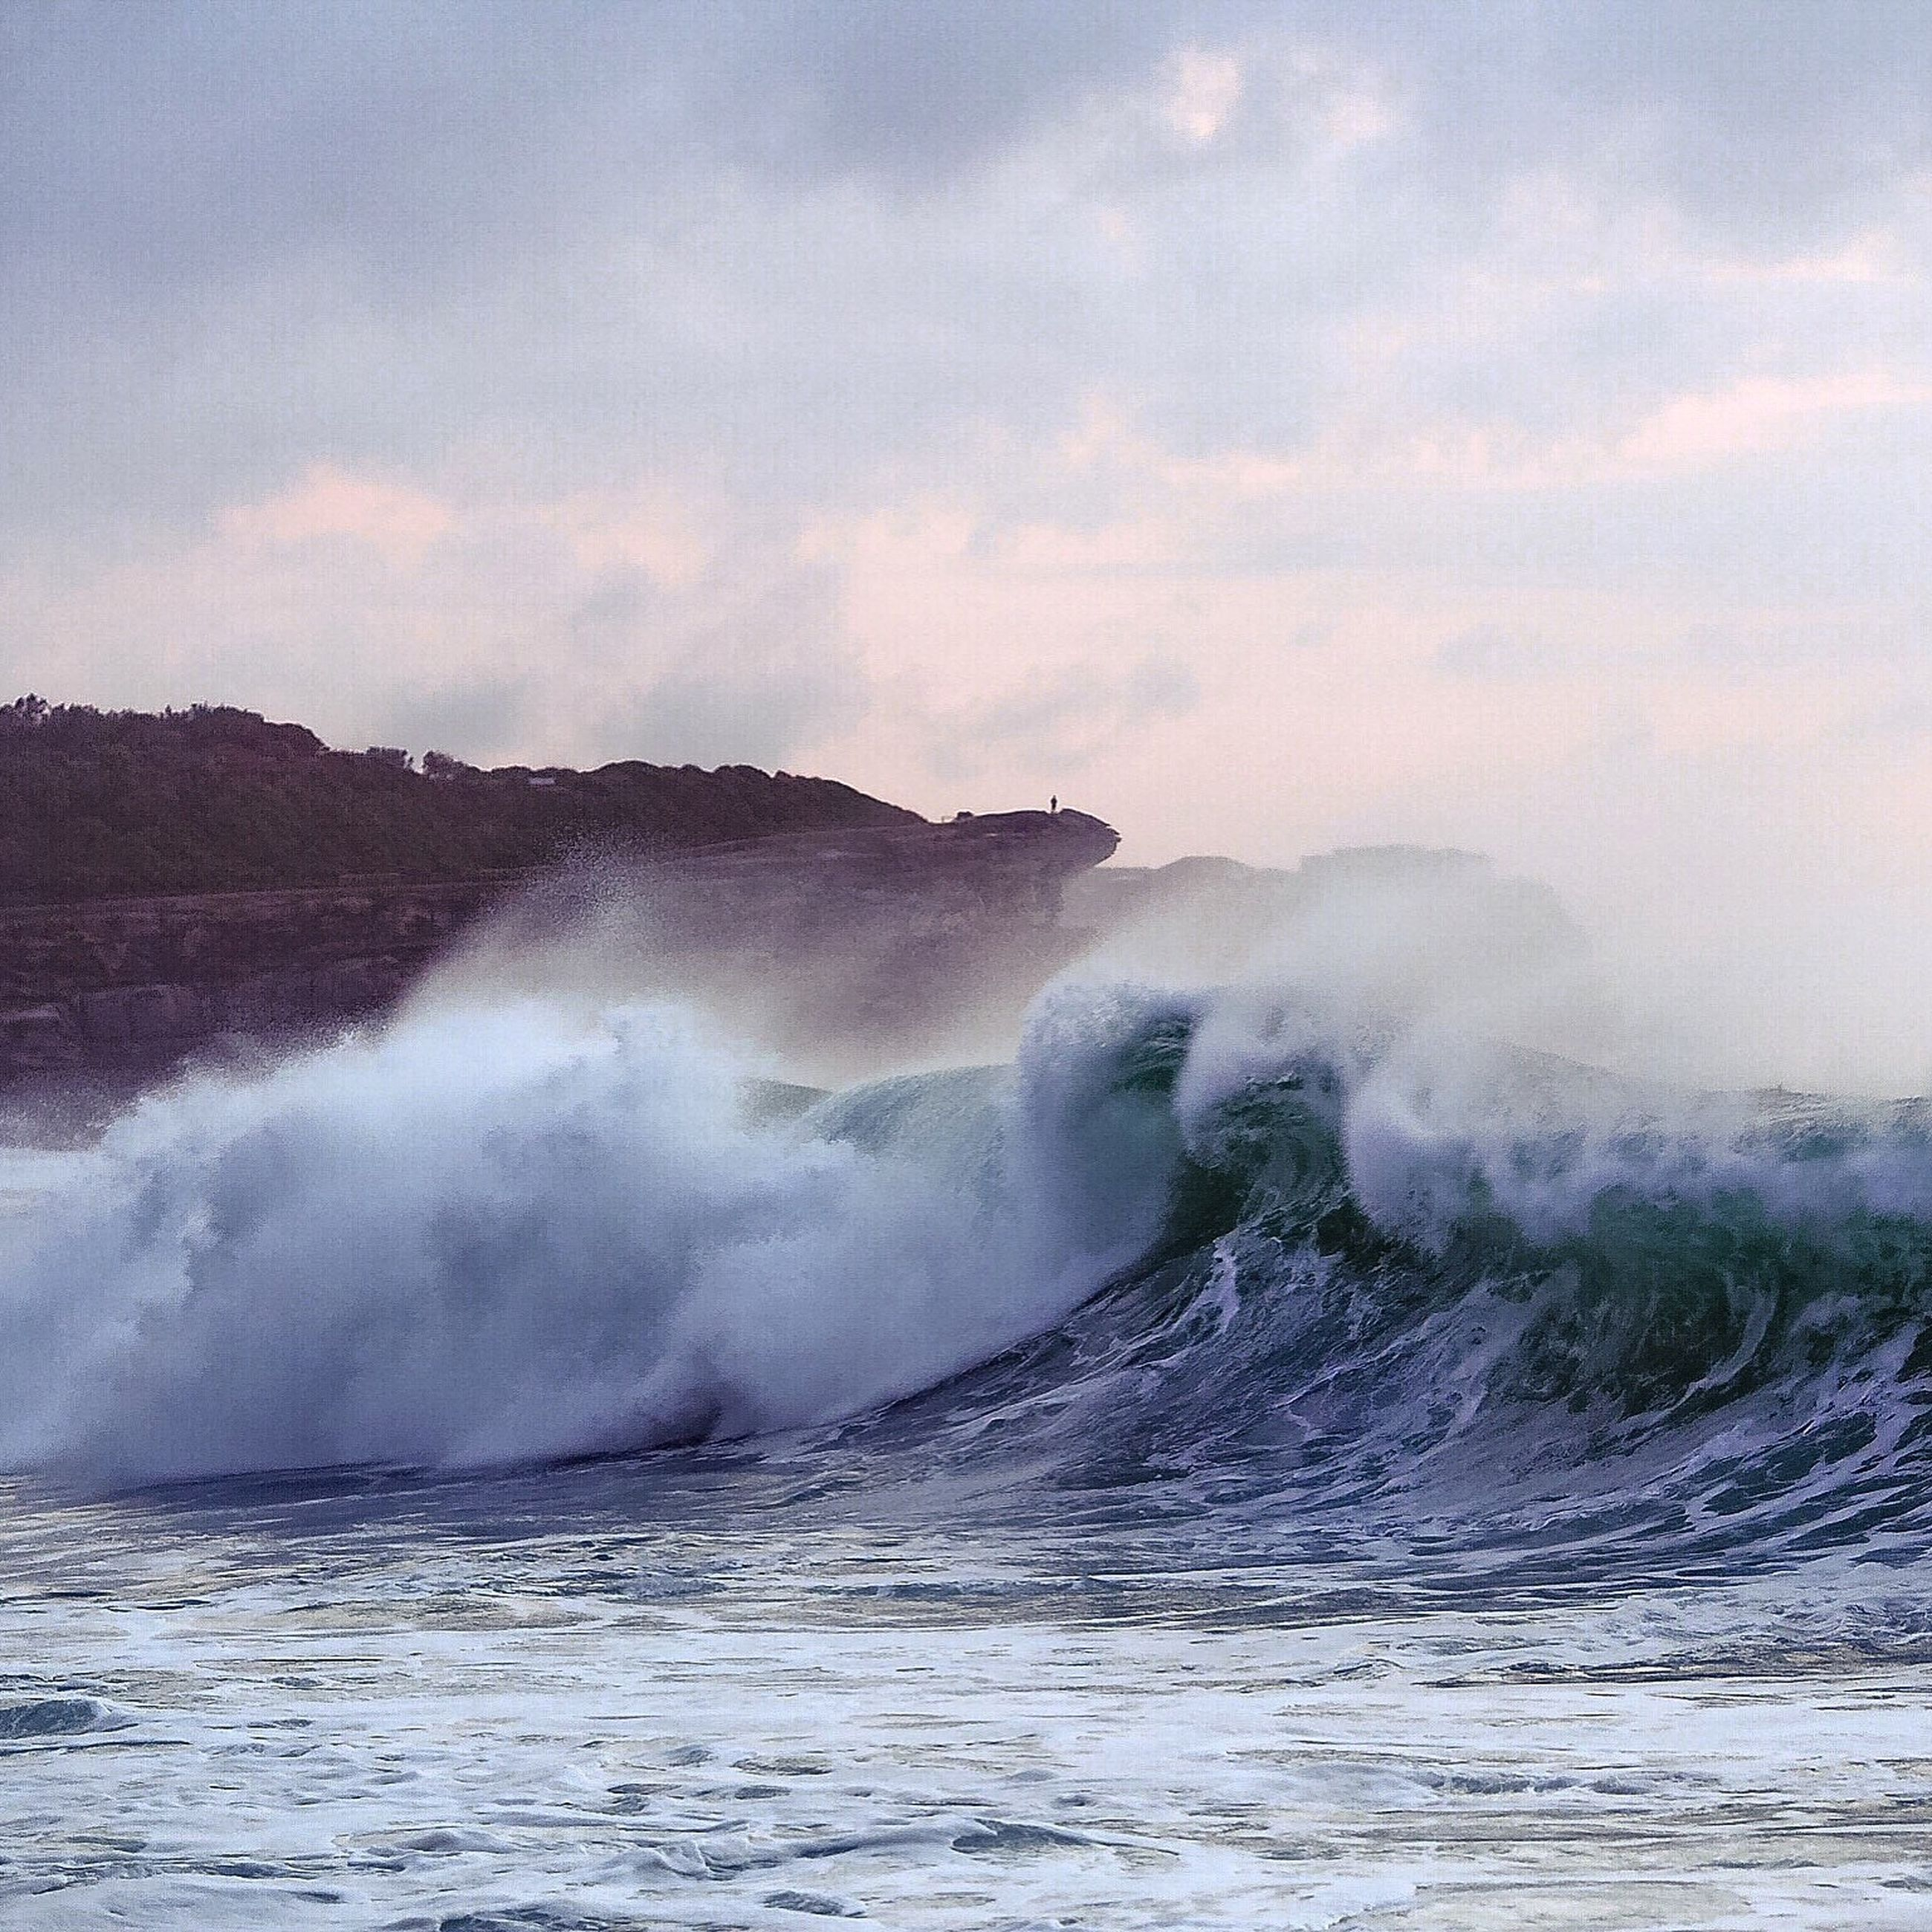 water, sea, scenics, beauty in nature, power in nature, surf, motion, waterfront, wave, nature, sky, splashing, tranquil scene, tranquility, idyllic, cloud - sky, outdoors, non-urban scene, geology, mountain